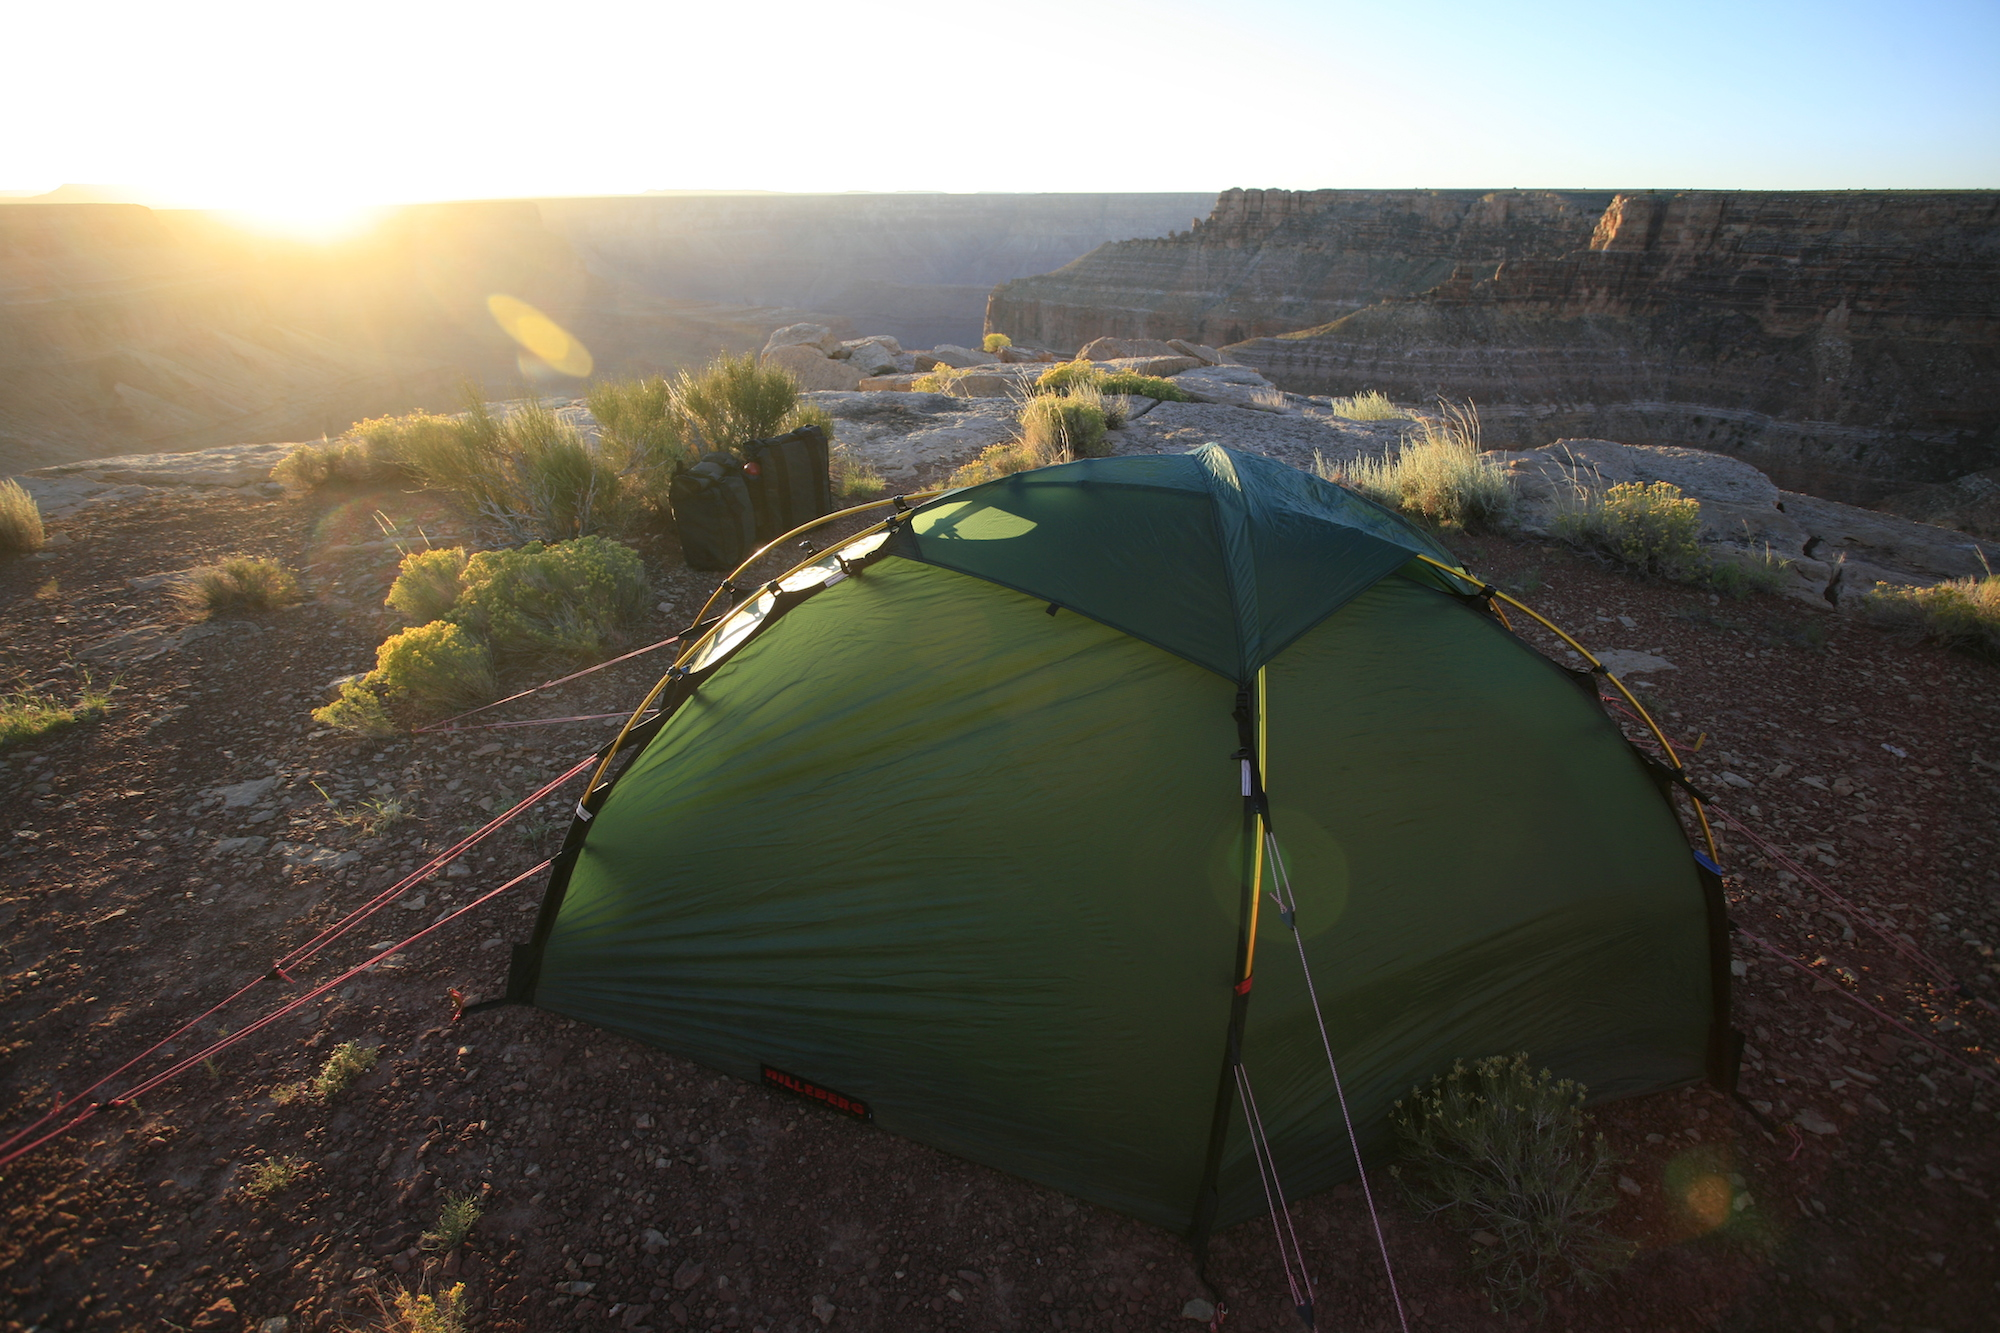 A superb Hilleberg Soulo single-person tent, well-guyed and staked against Grand Canyon katabatic gusts.